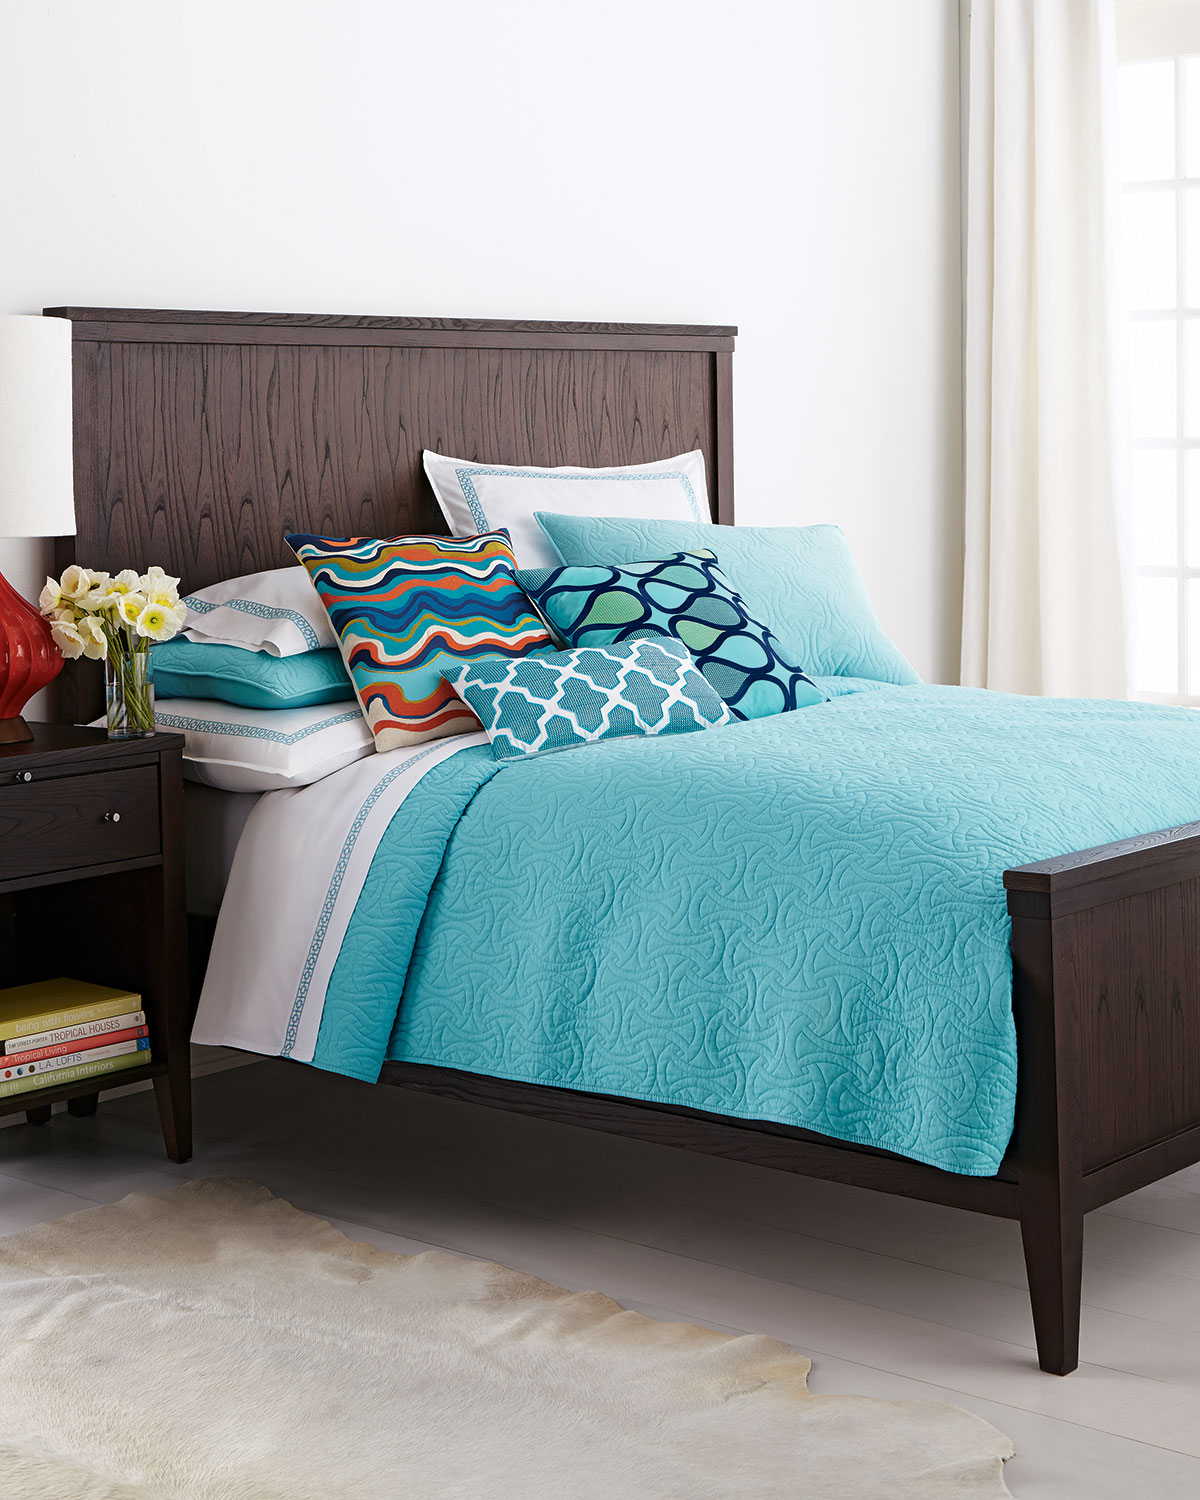 Turquoise ocean with the trina turk turquoise santorini bedding